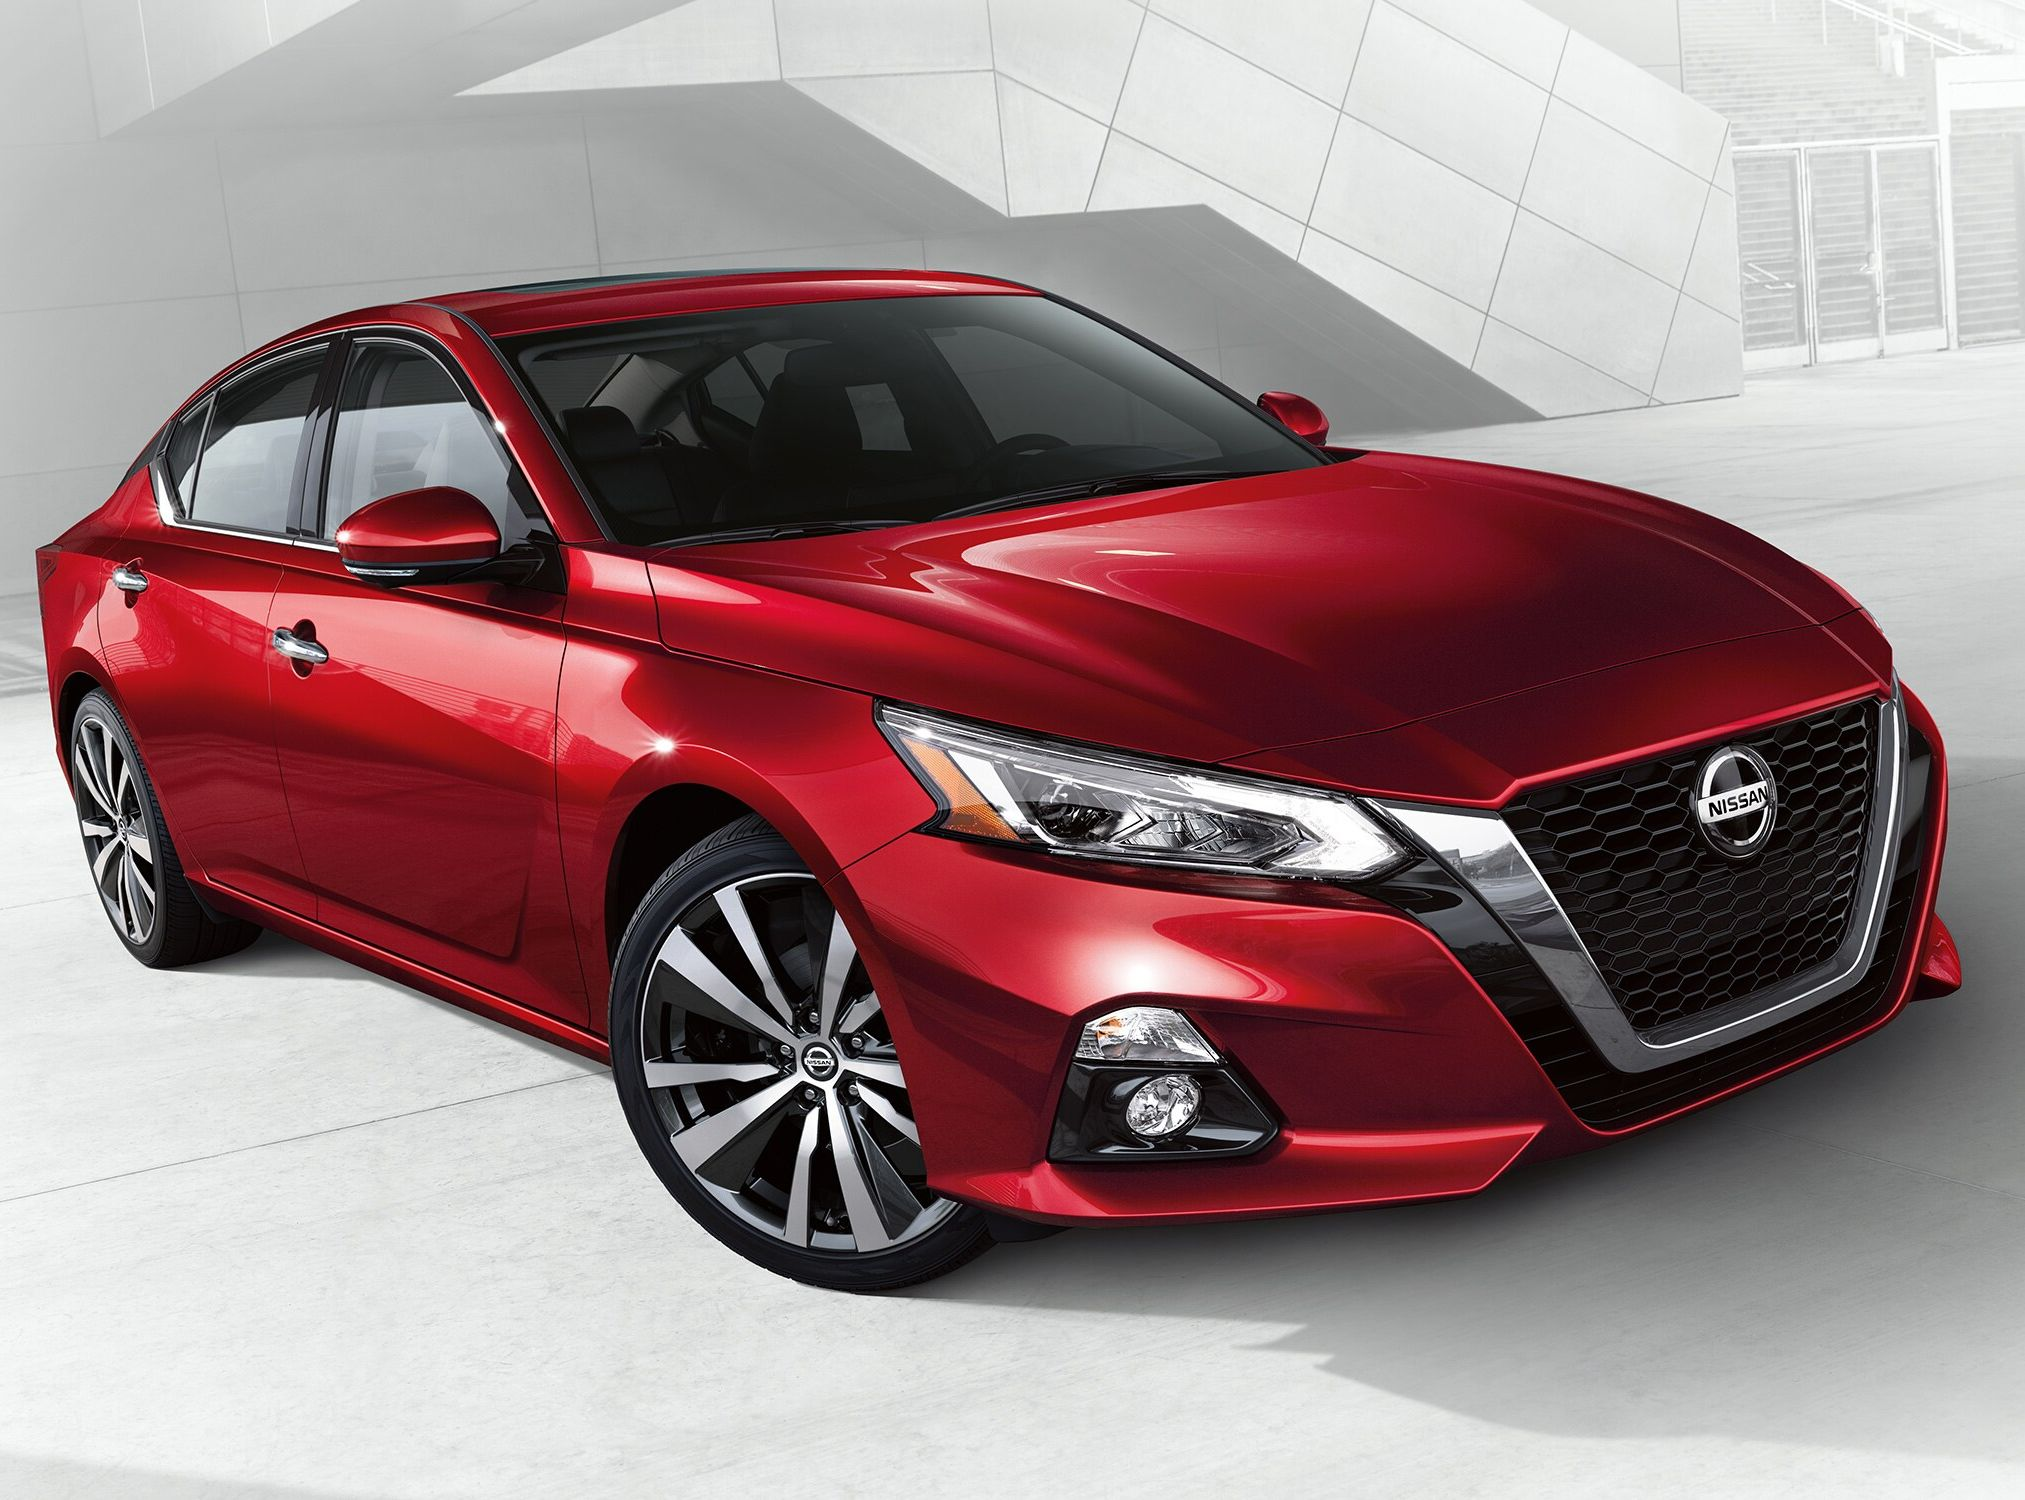 2019 Nissan Altima Leasing near Tinley Park, IL